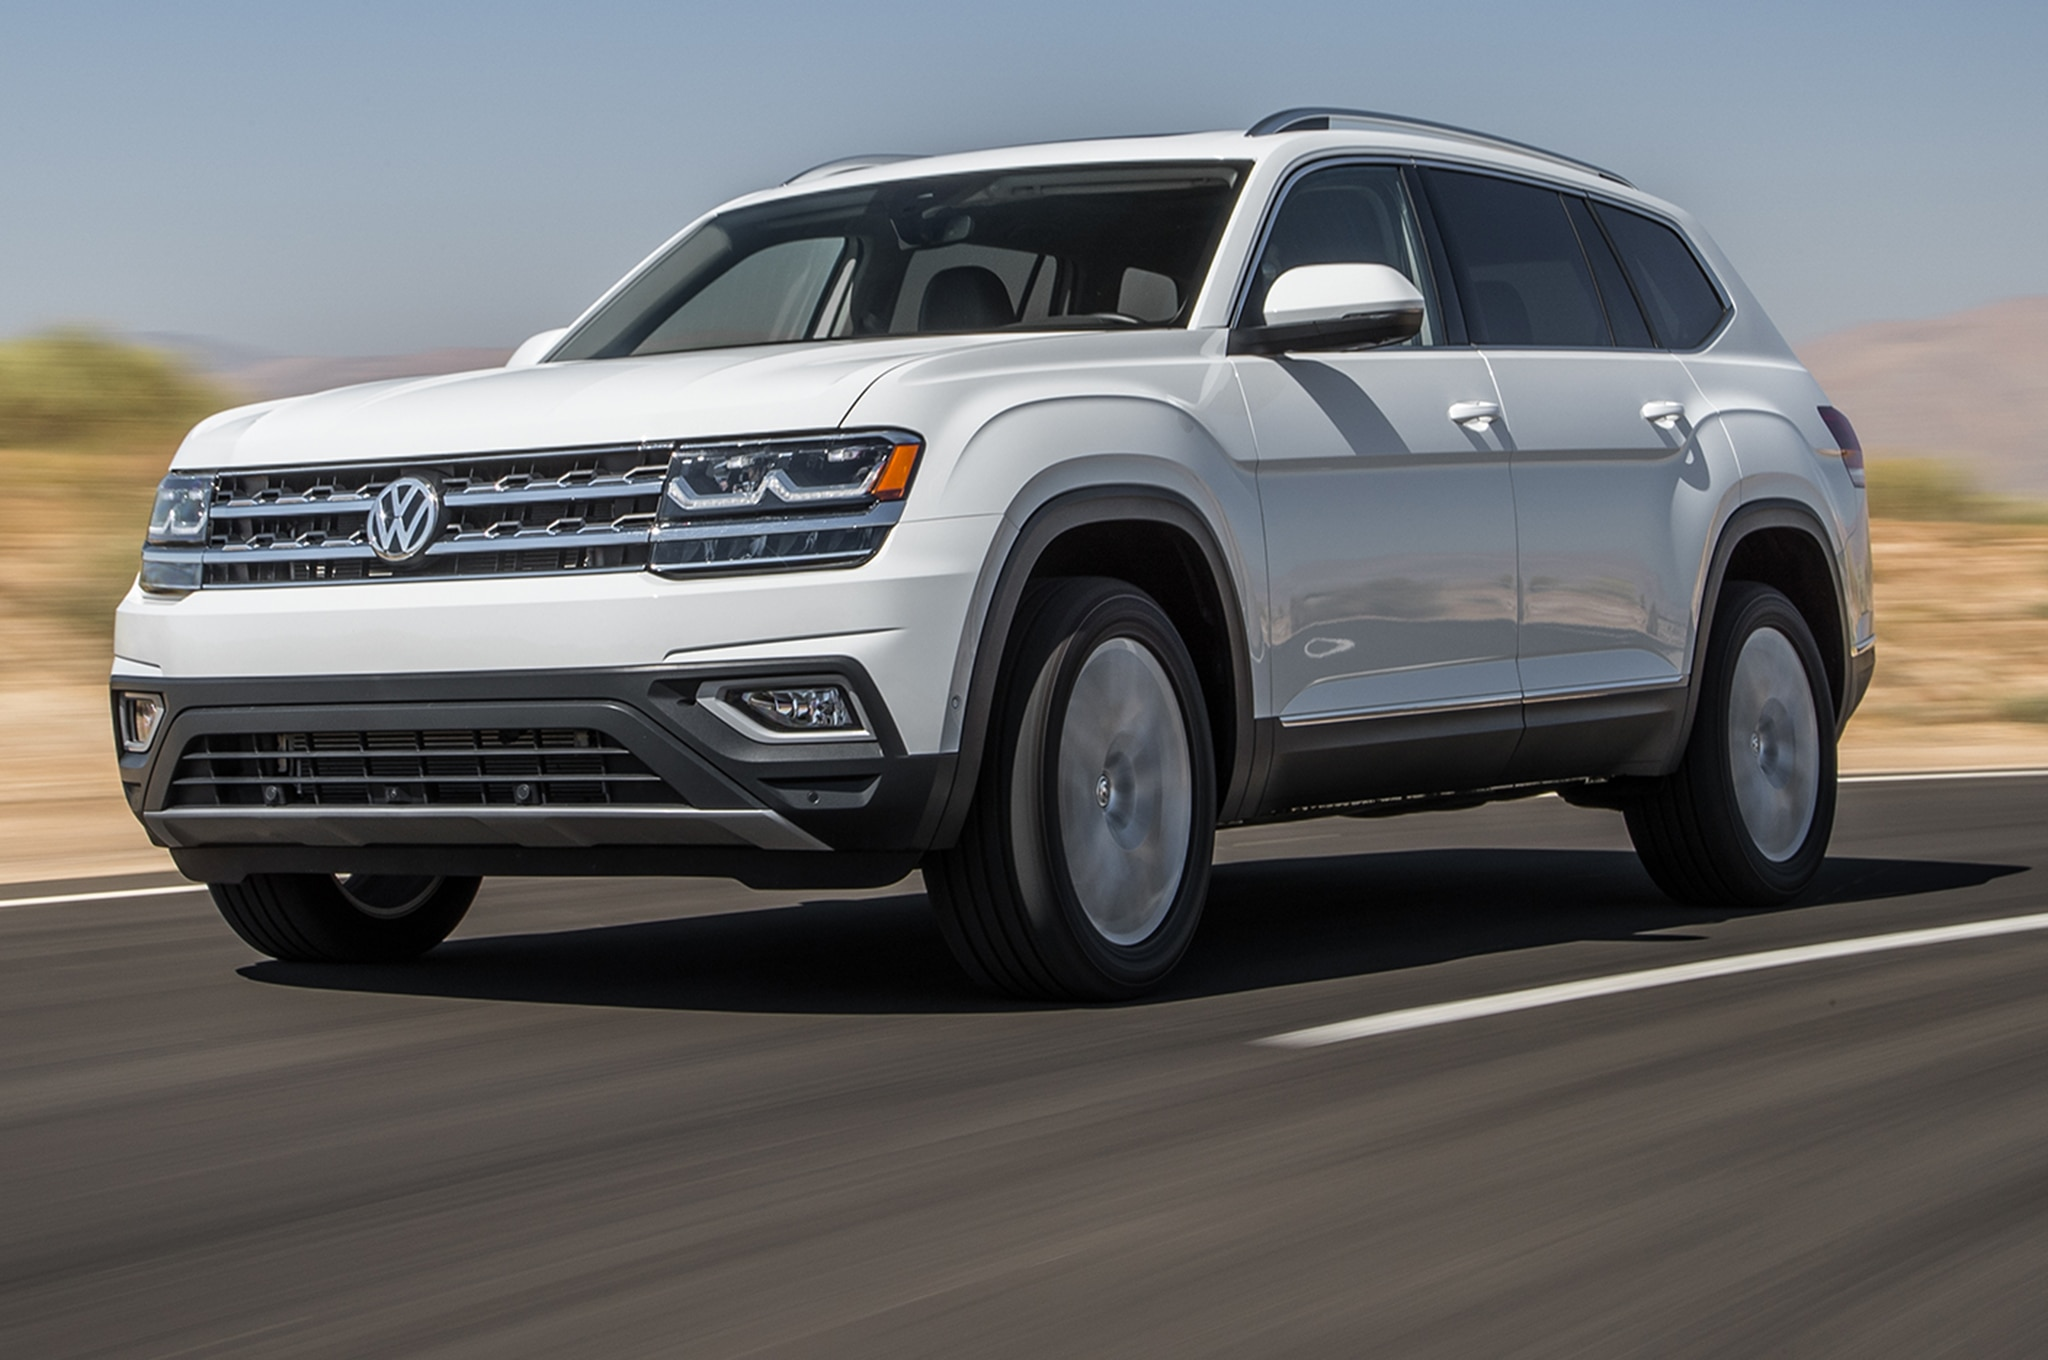 2018 Volkswagen Atlas V6 SEL 4Motion Front Three Quarter In Motion 01